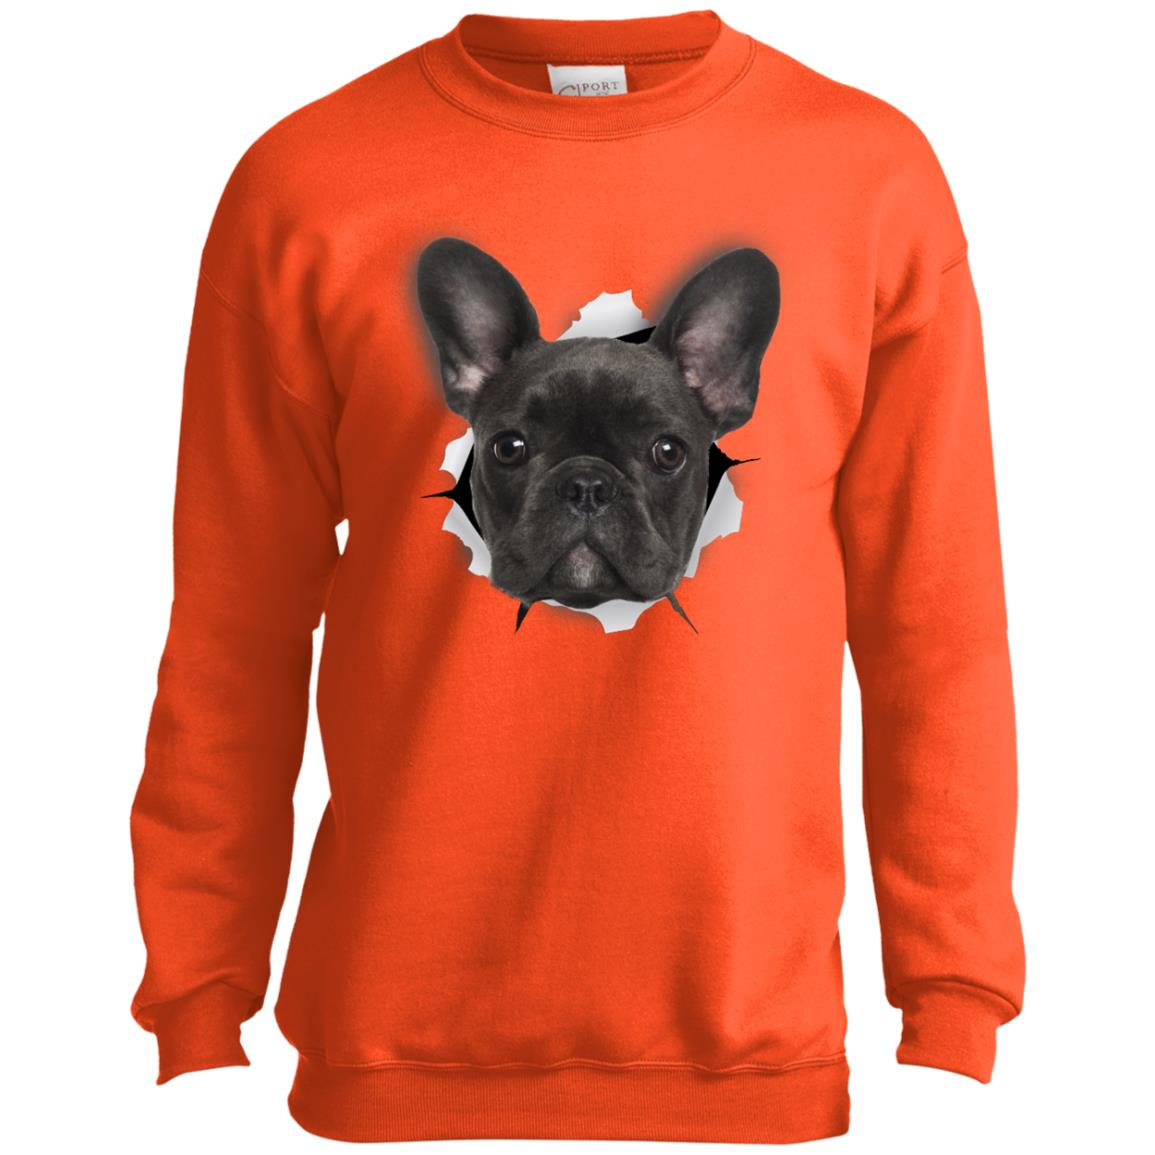 Black Frenchie Youth Crewneck Sweatshirt